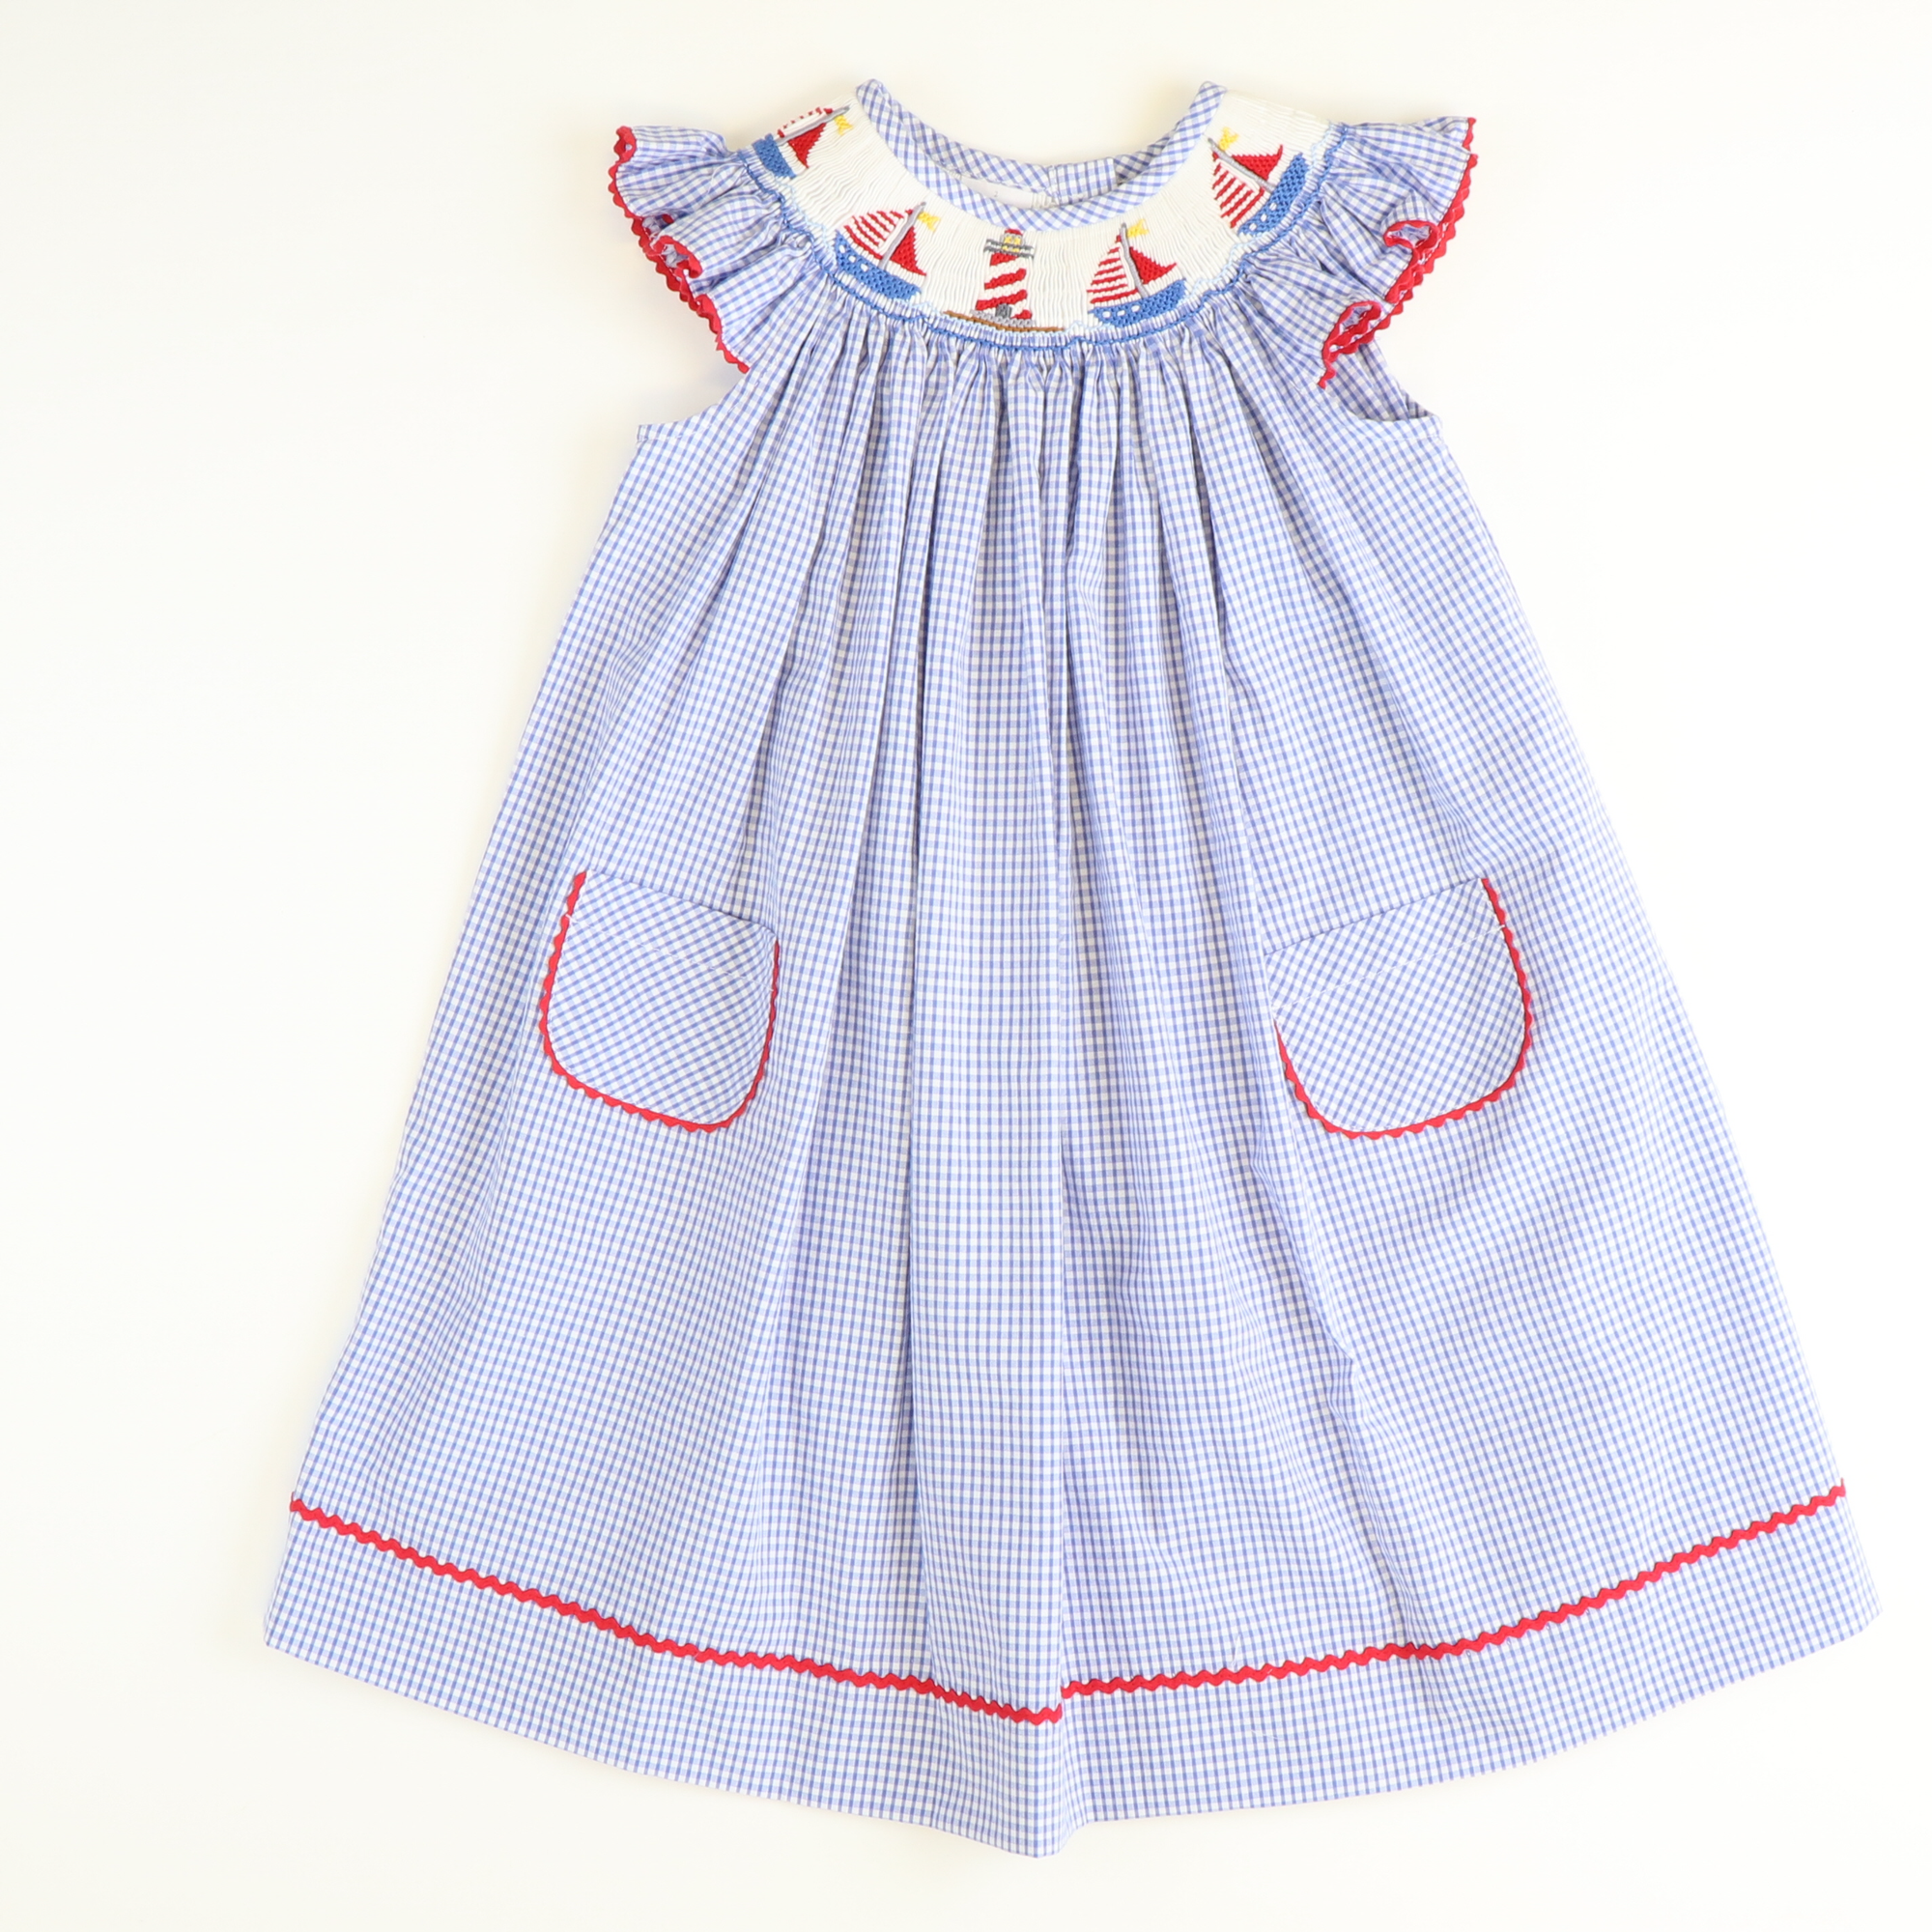 Smocked Nautical Bishop - Royal Check Seersucker